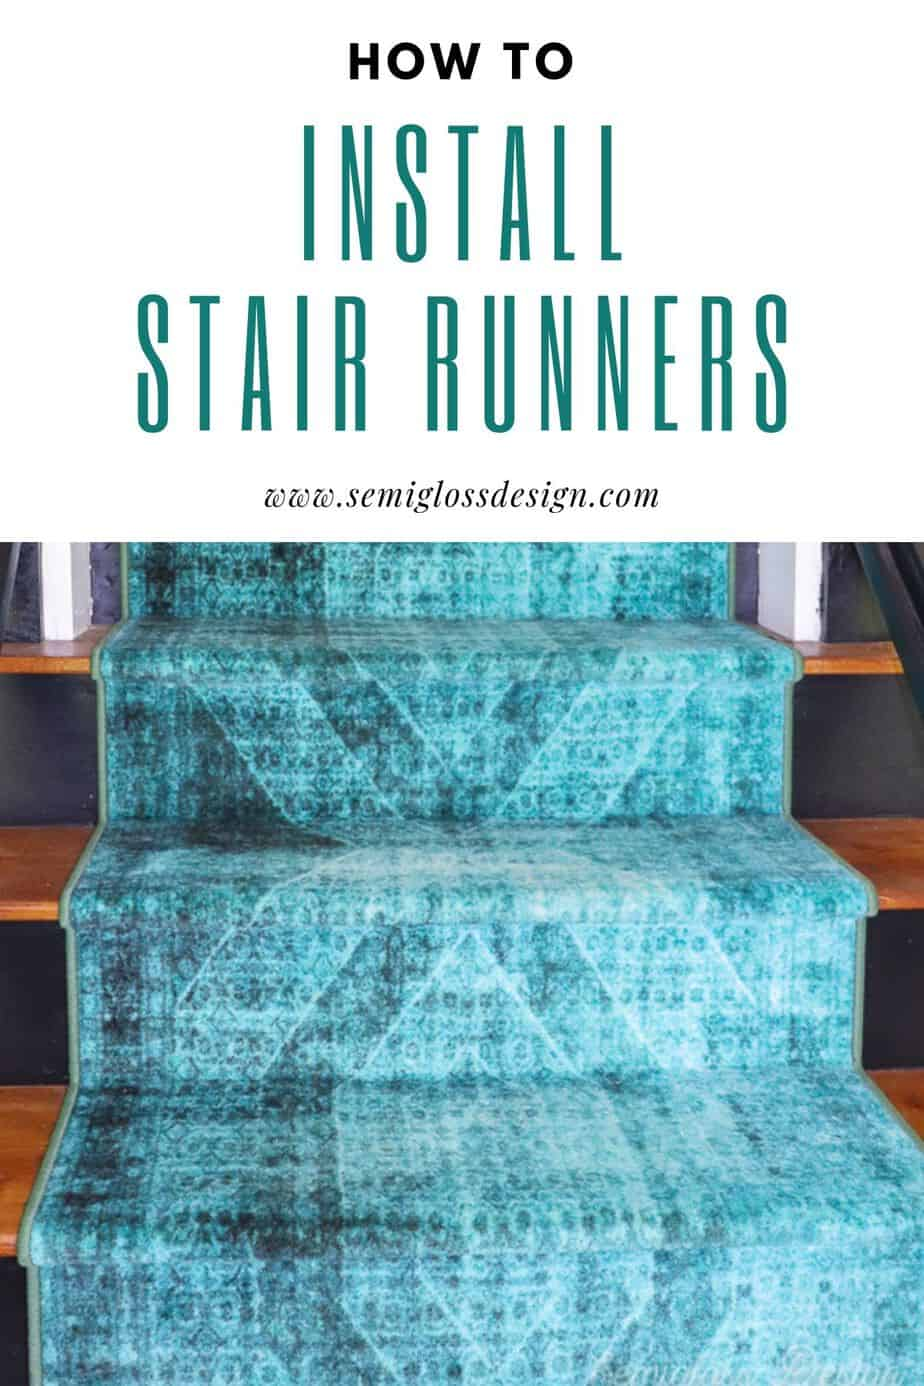 learn how to install stair runners